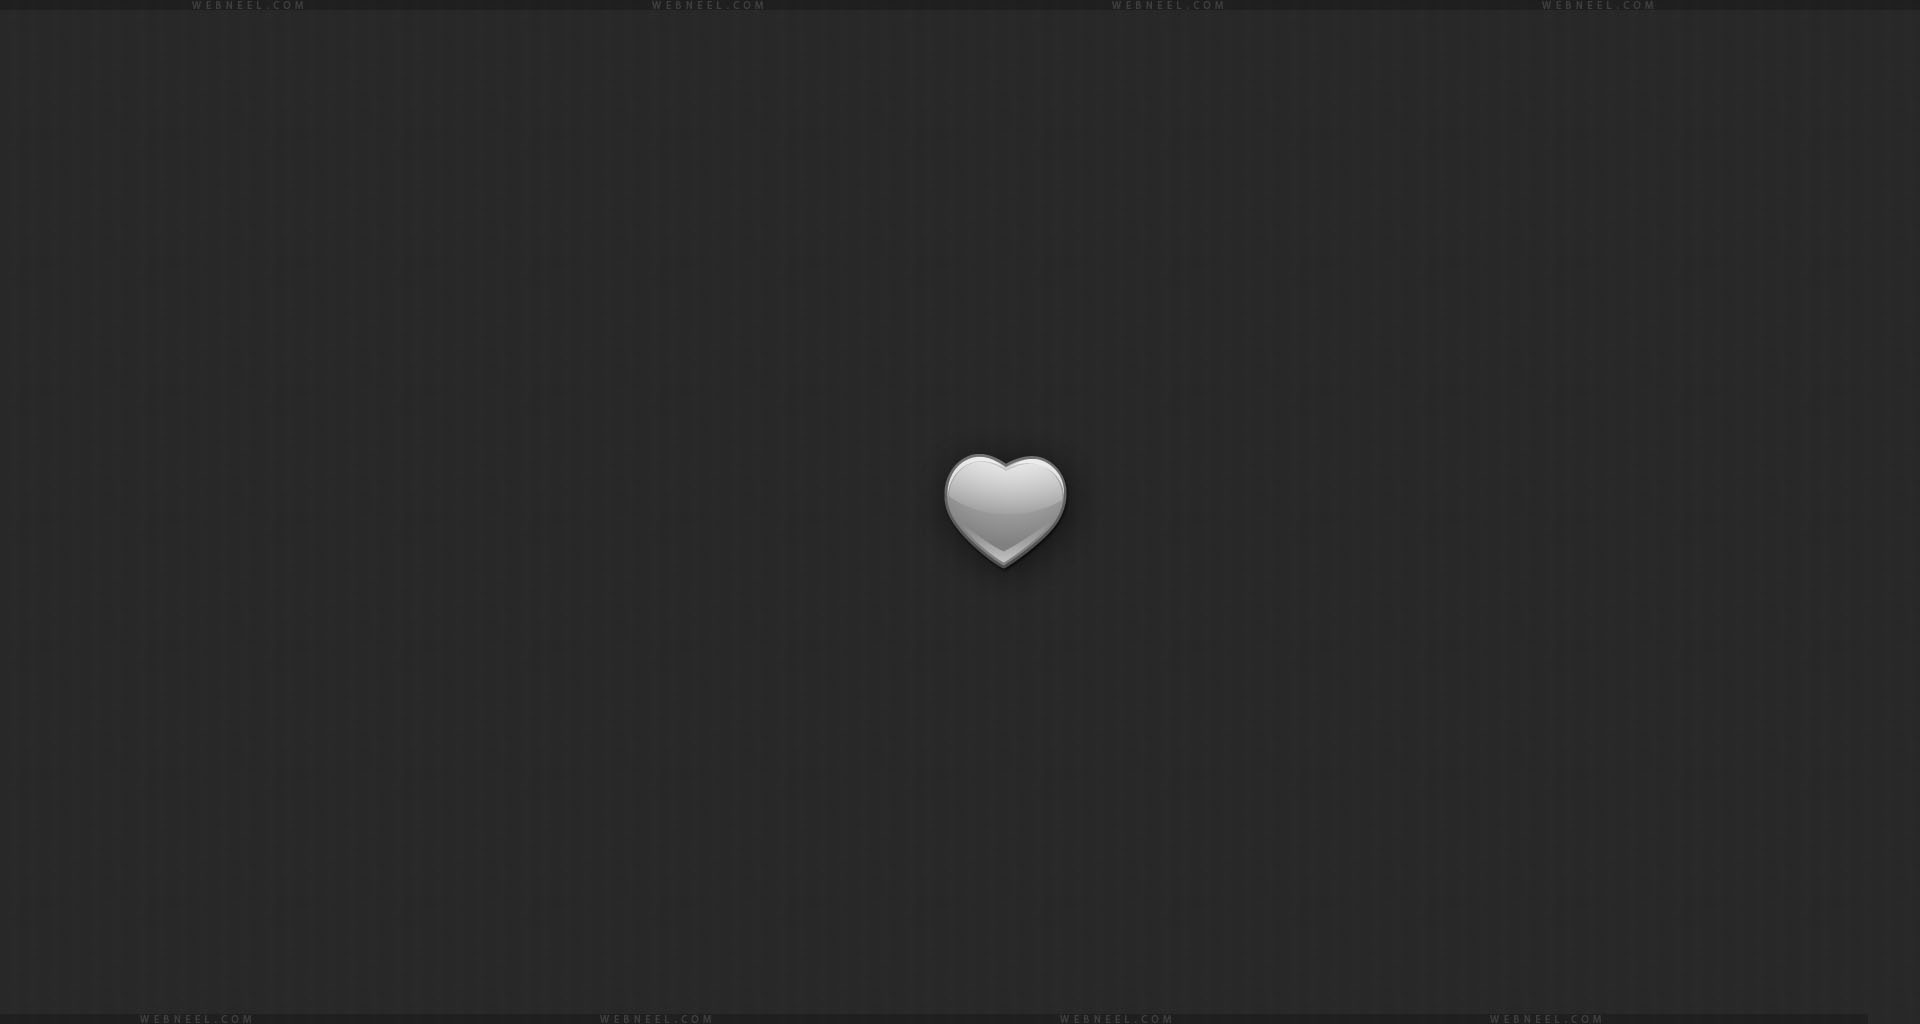 black wallpaper love heart hd